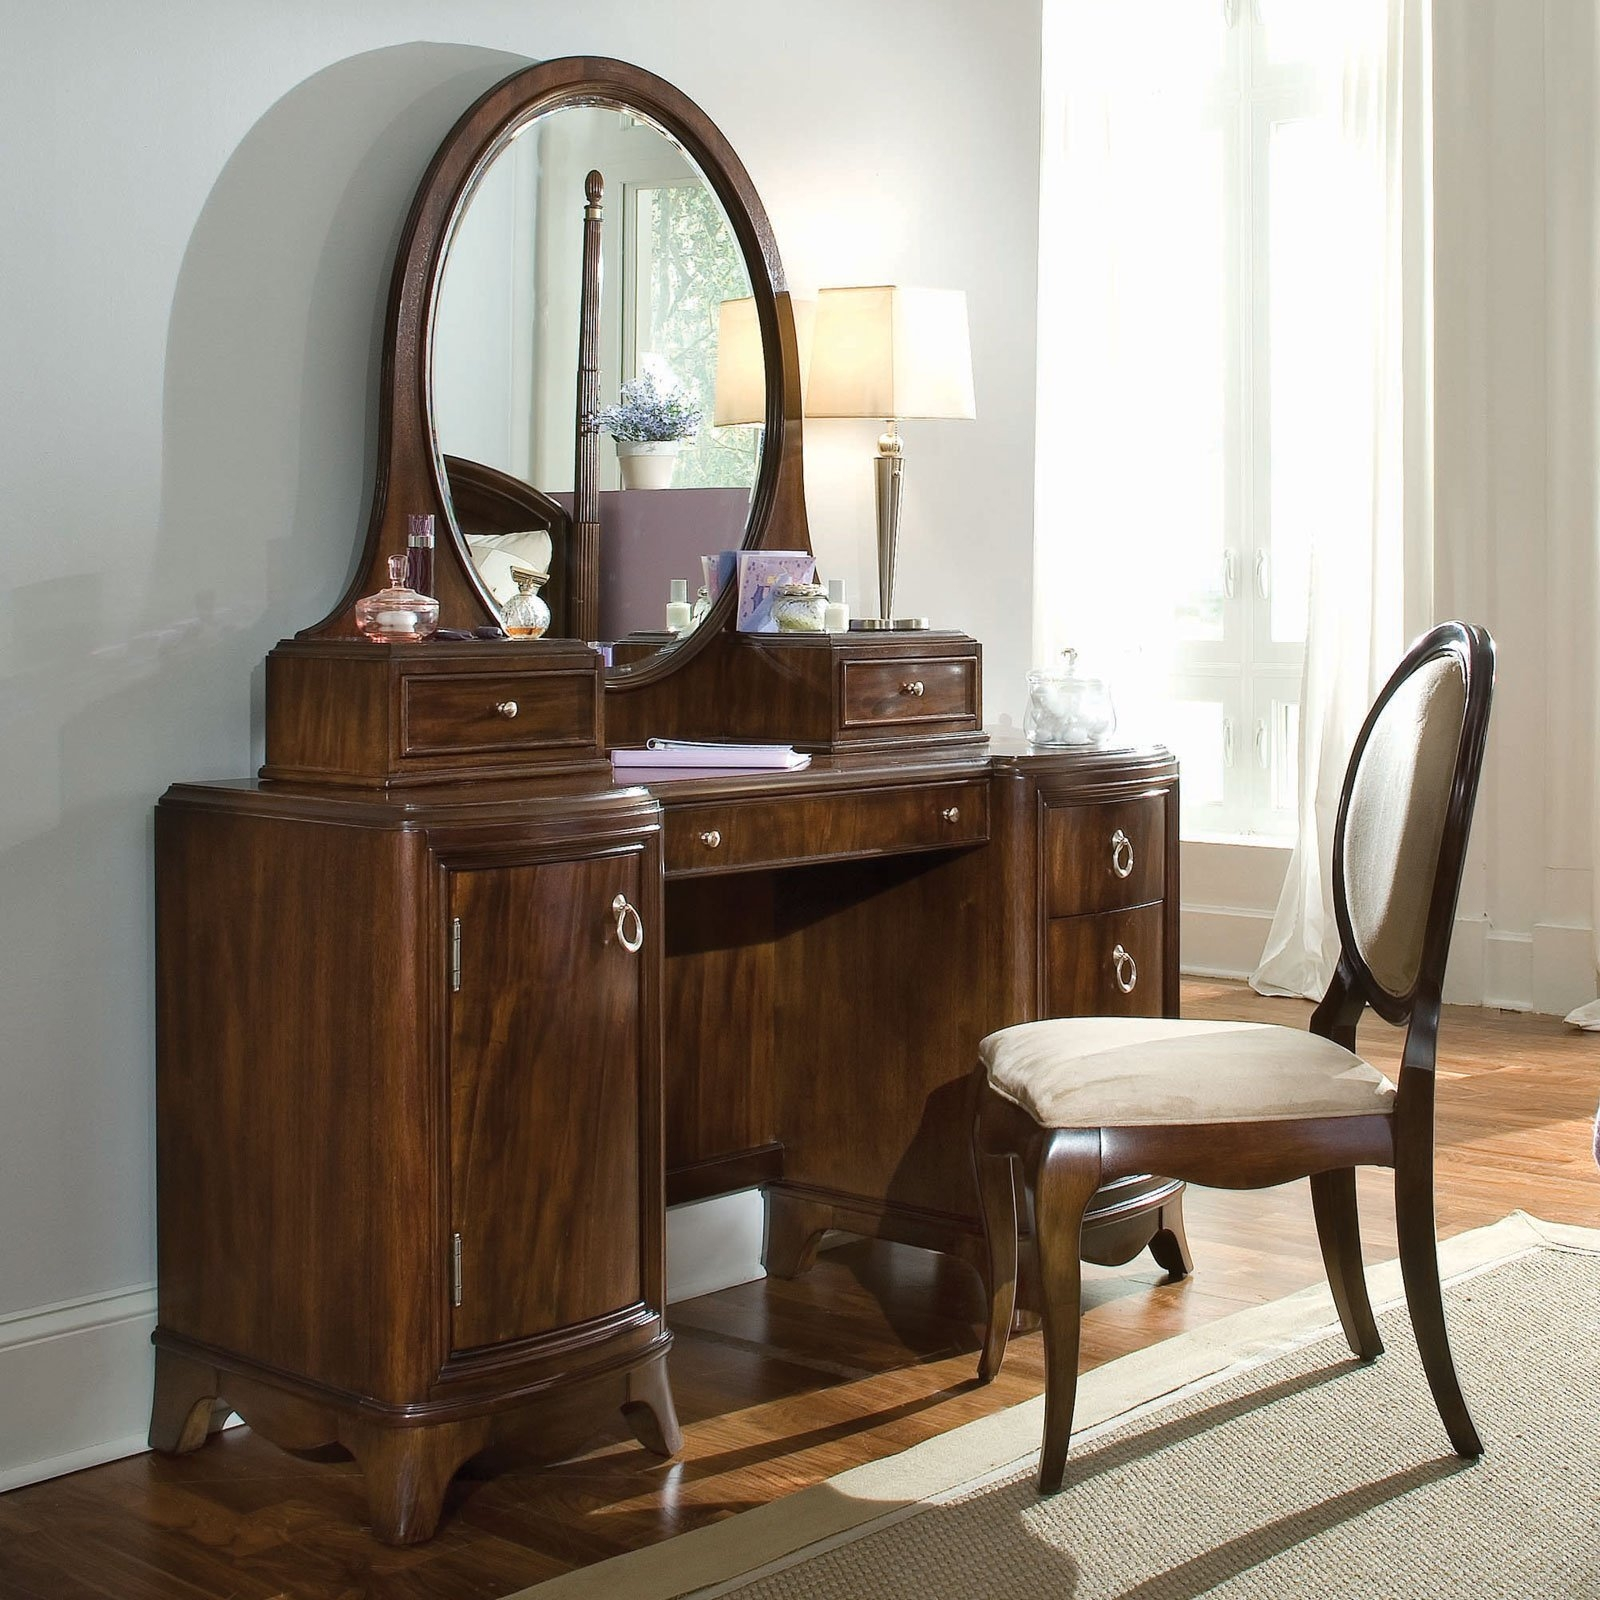 Elegant Dark Brown Wooden Antique Vanity Table Design With Chair With Antique Dressing Mirror Full Length (Image 14 of 15)